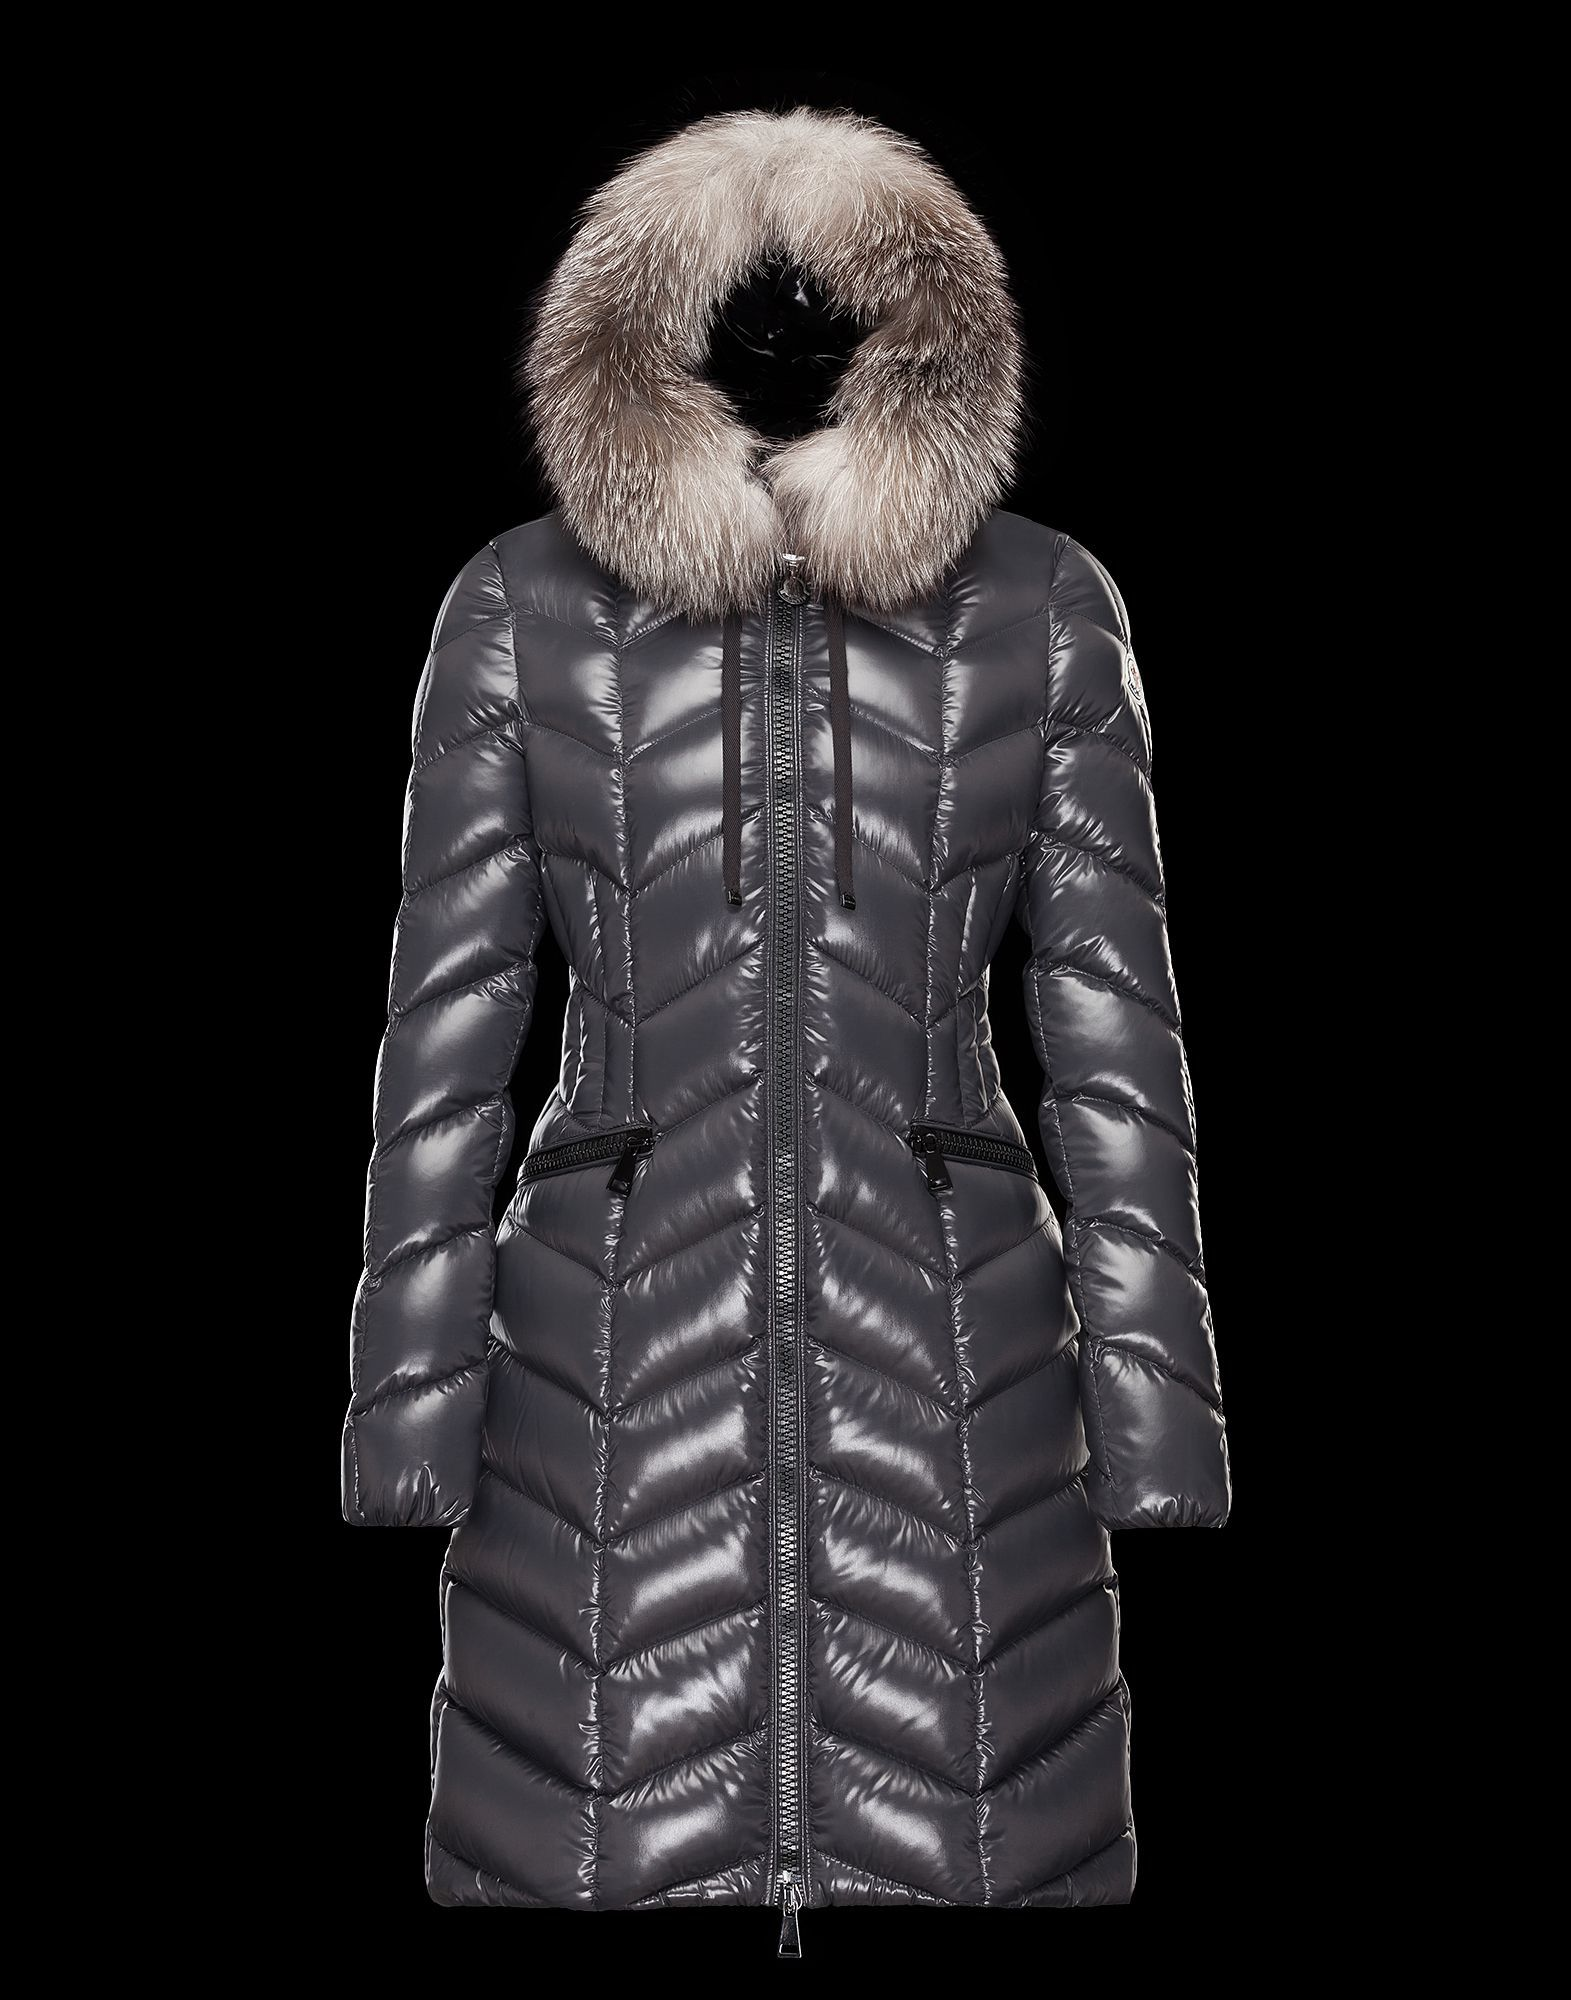 Clothing and down jackets for men, women and kids Coats